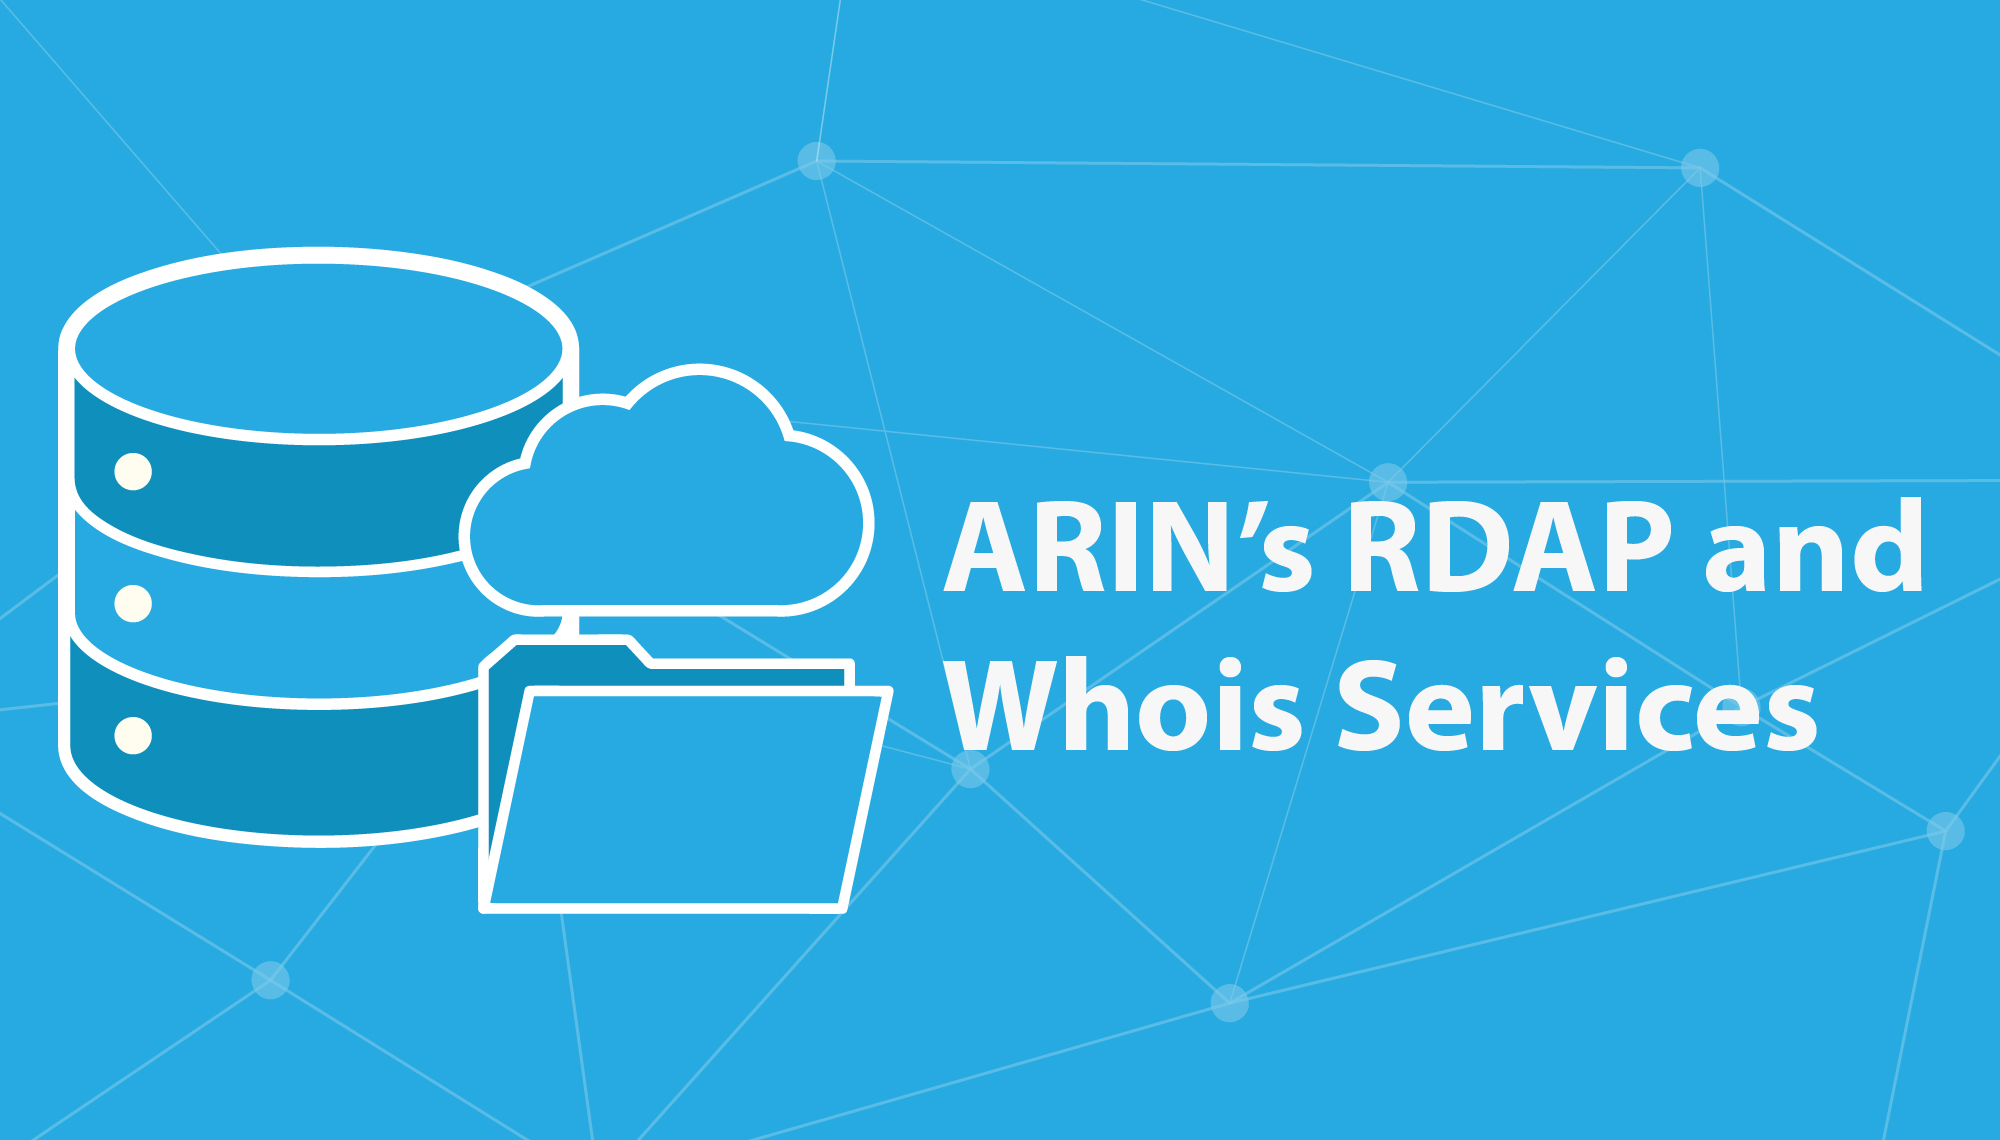 Header Graphic: ARIN's RDAP and Whois Services